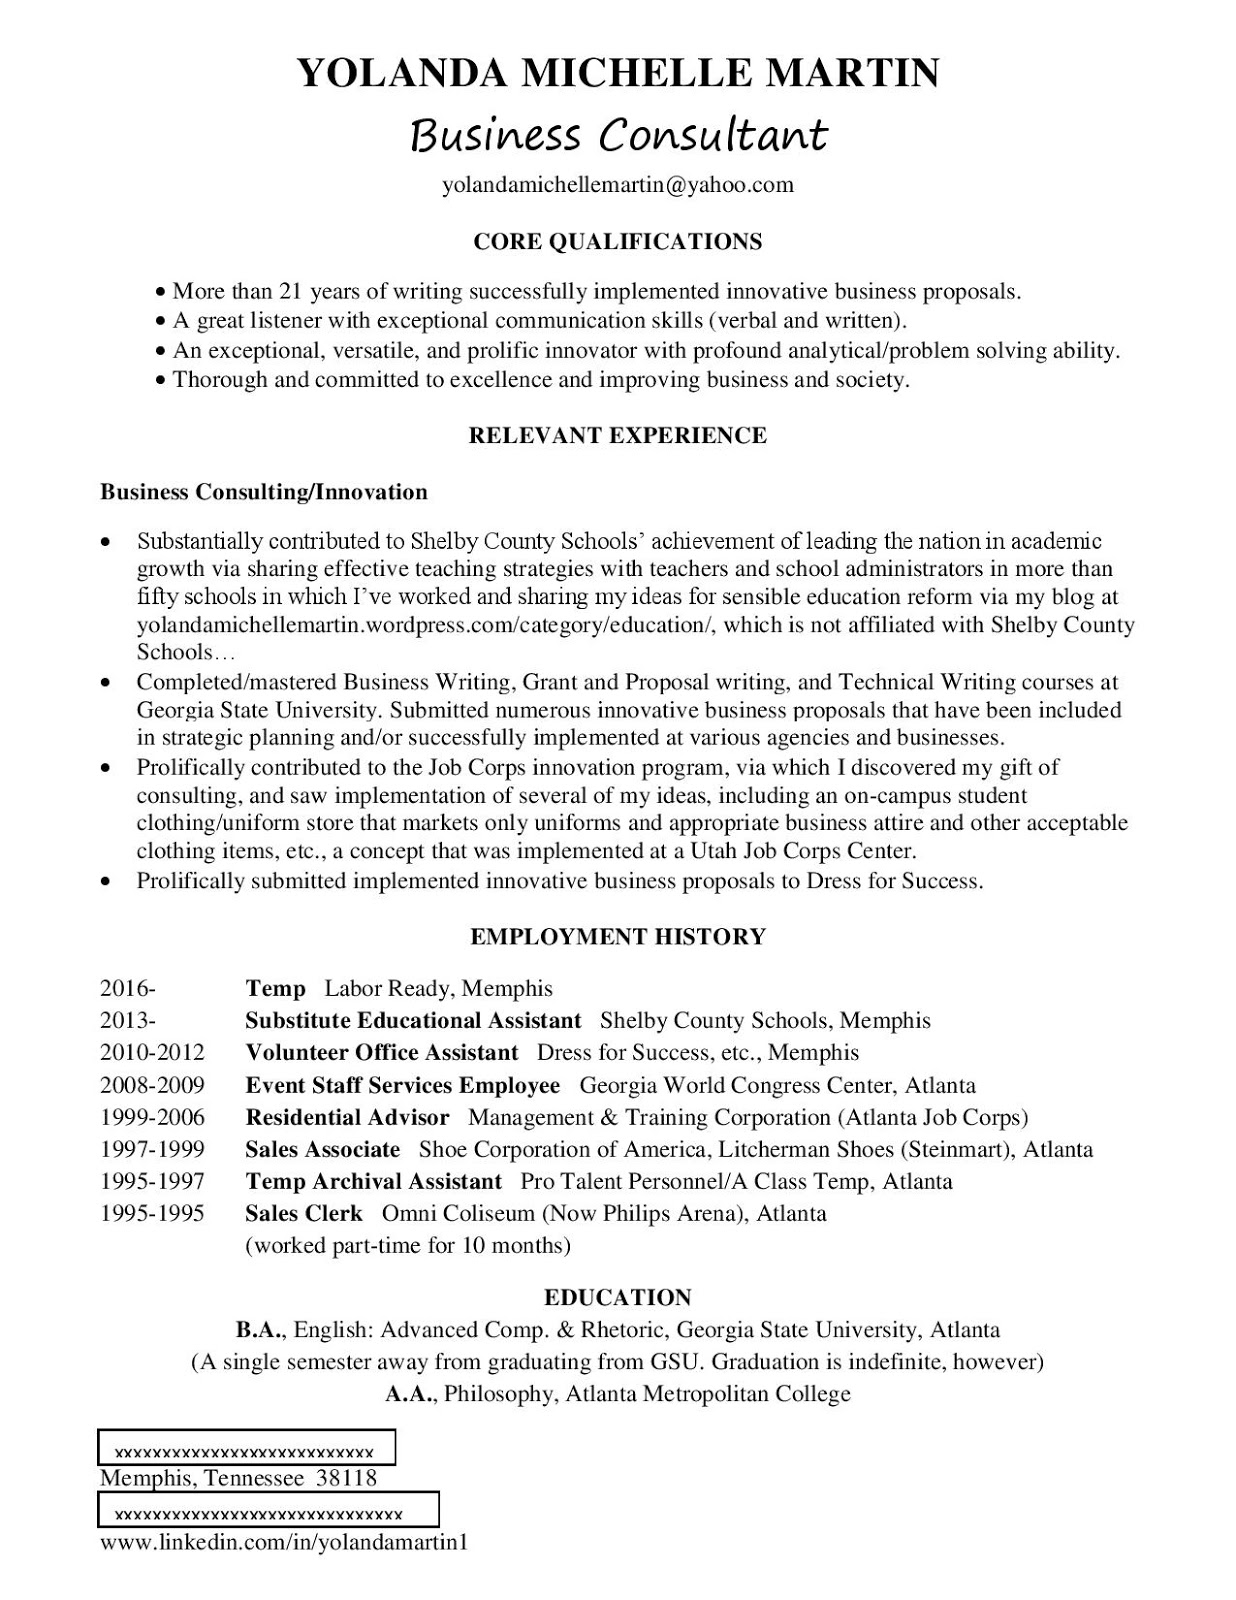 listing merely the job titles without a summary of job duties in the employment history section in this resume format actually and quite sufficiently